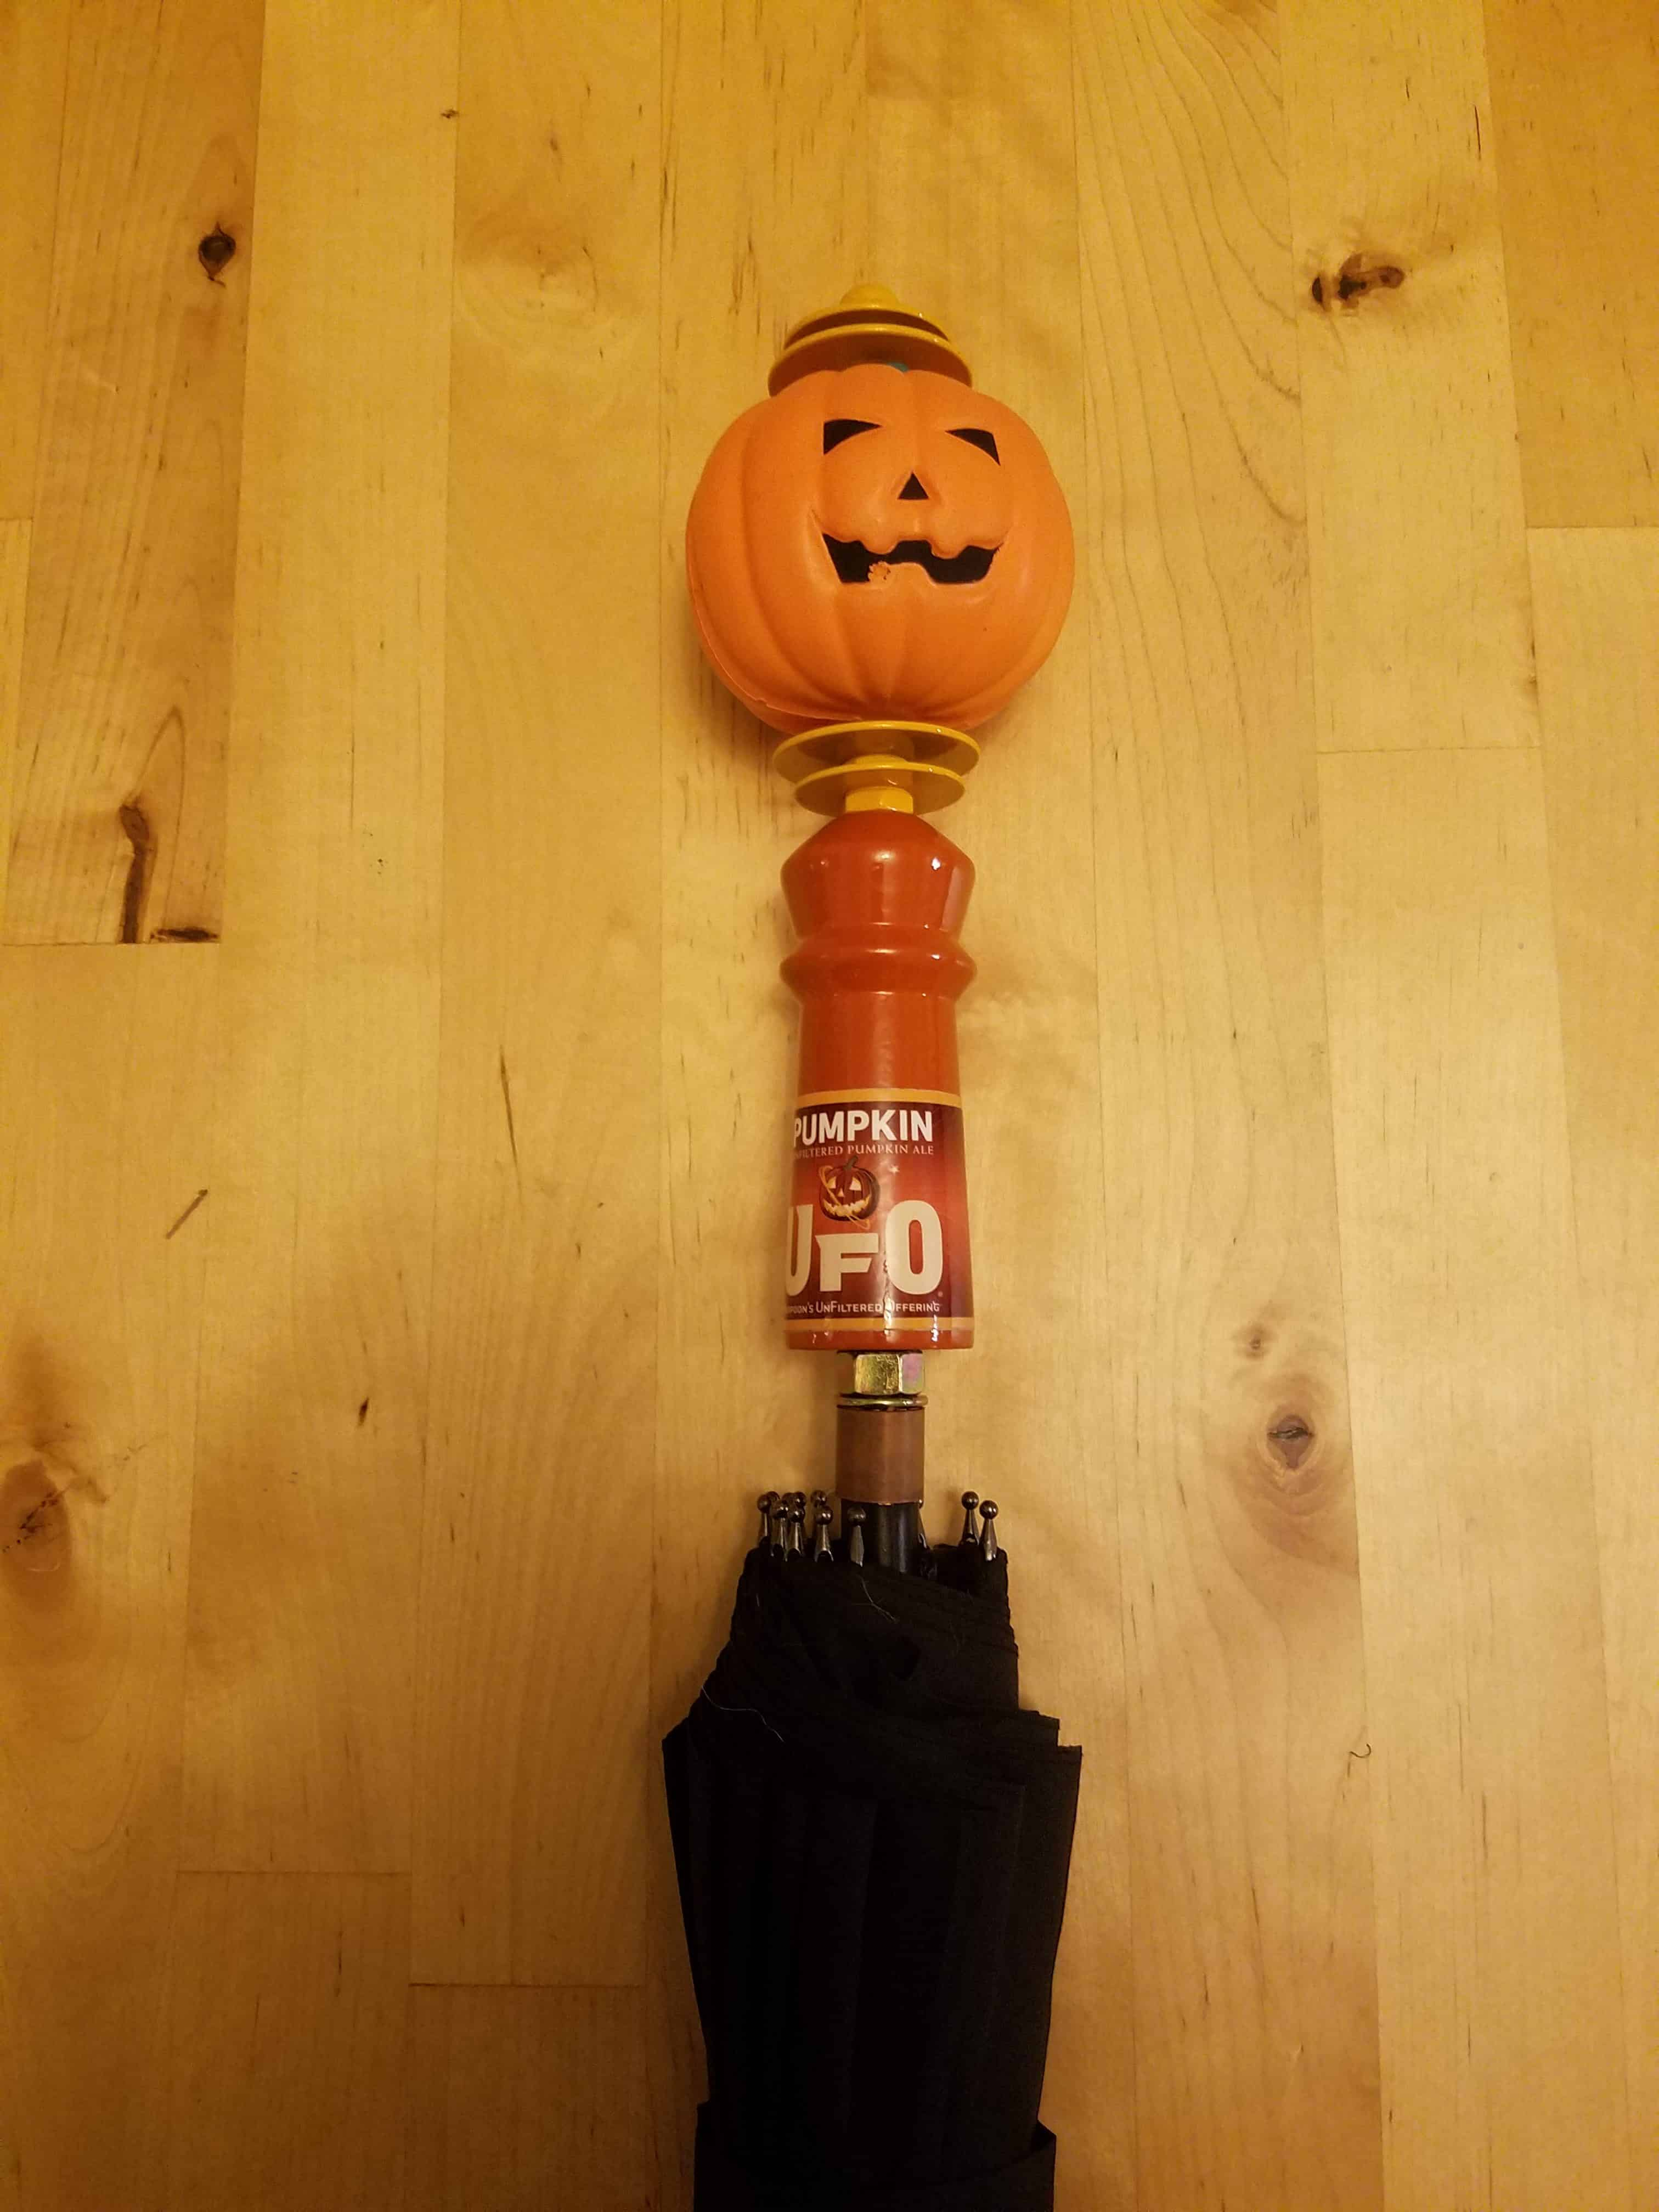 Harpoon UFO Pumpkin Tap Handle Umbrella